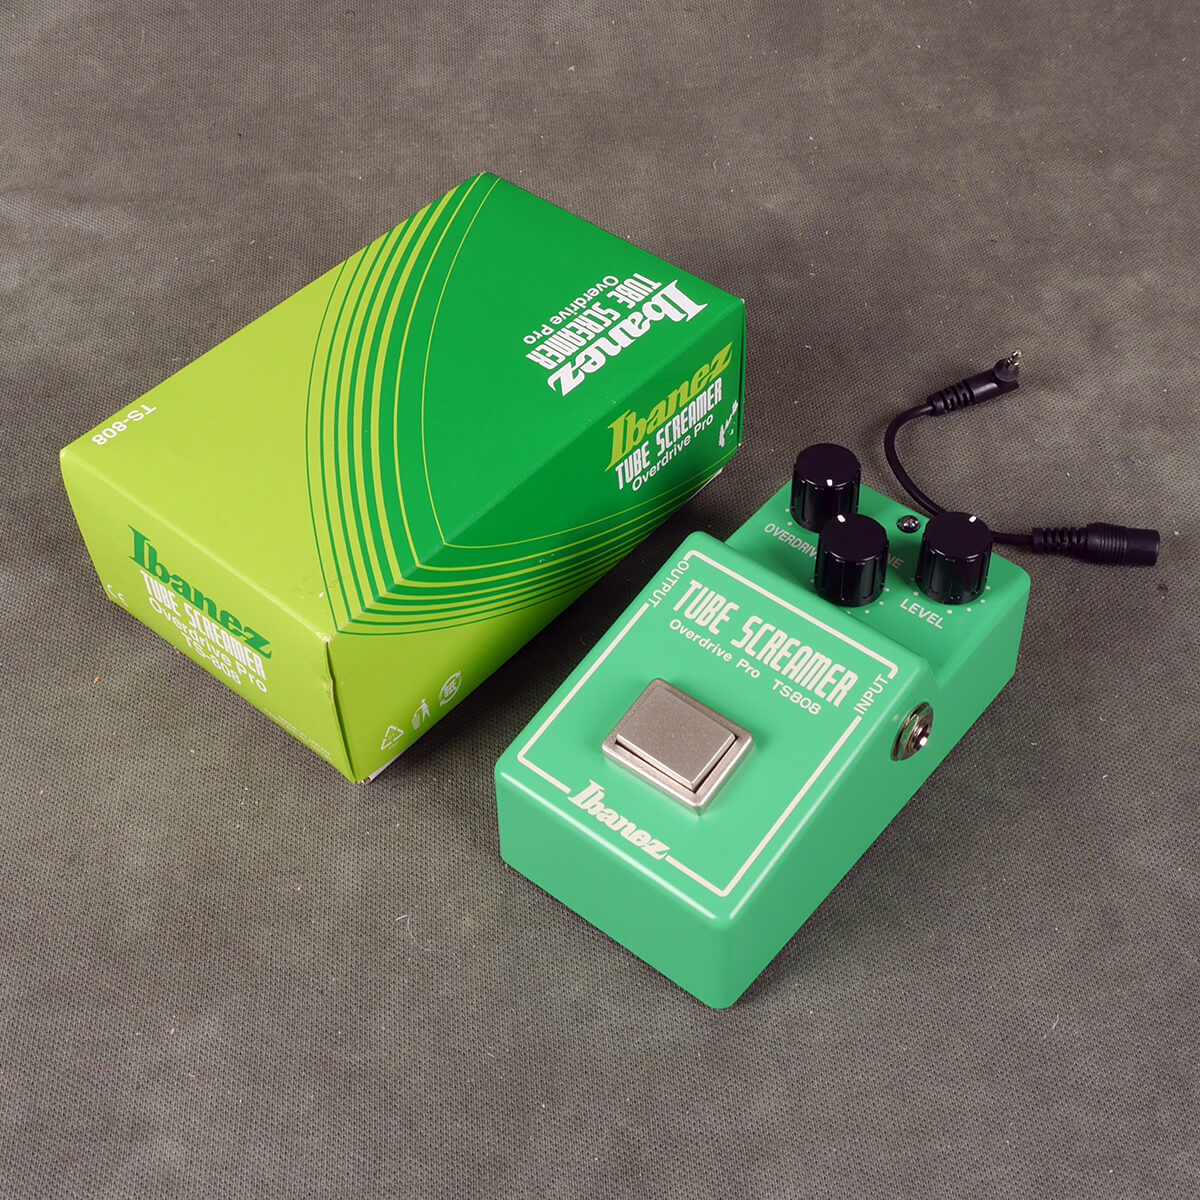 Ibanez TS808 Overdrive FX Pedal w/Box - 2nd Hand